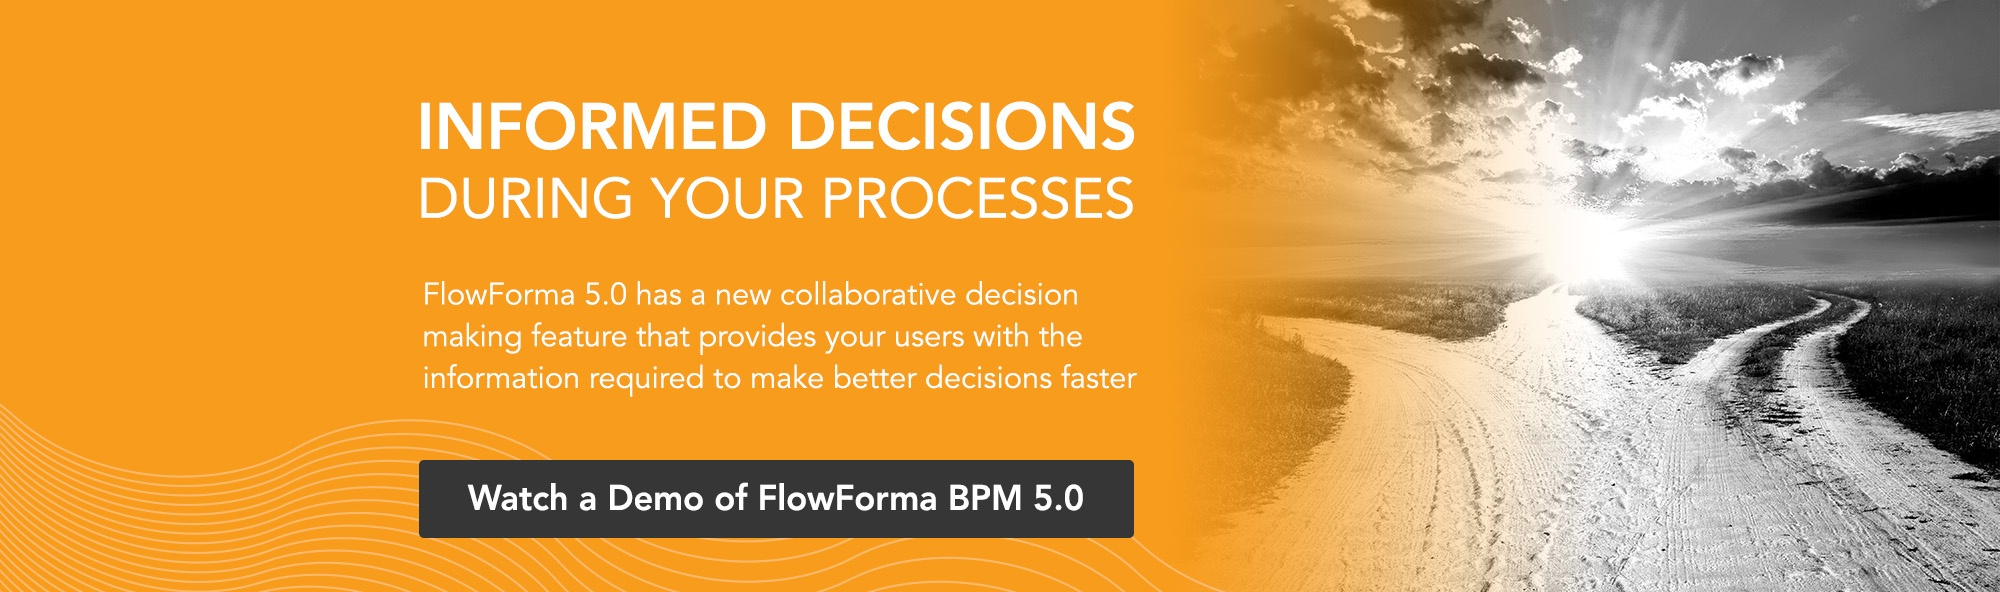 Make informed decisions during your processes with FlowForma's new collaborative decision making feature